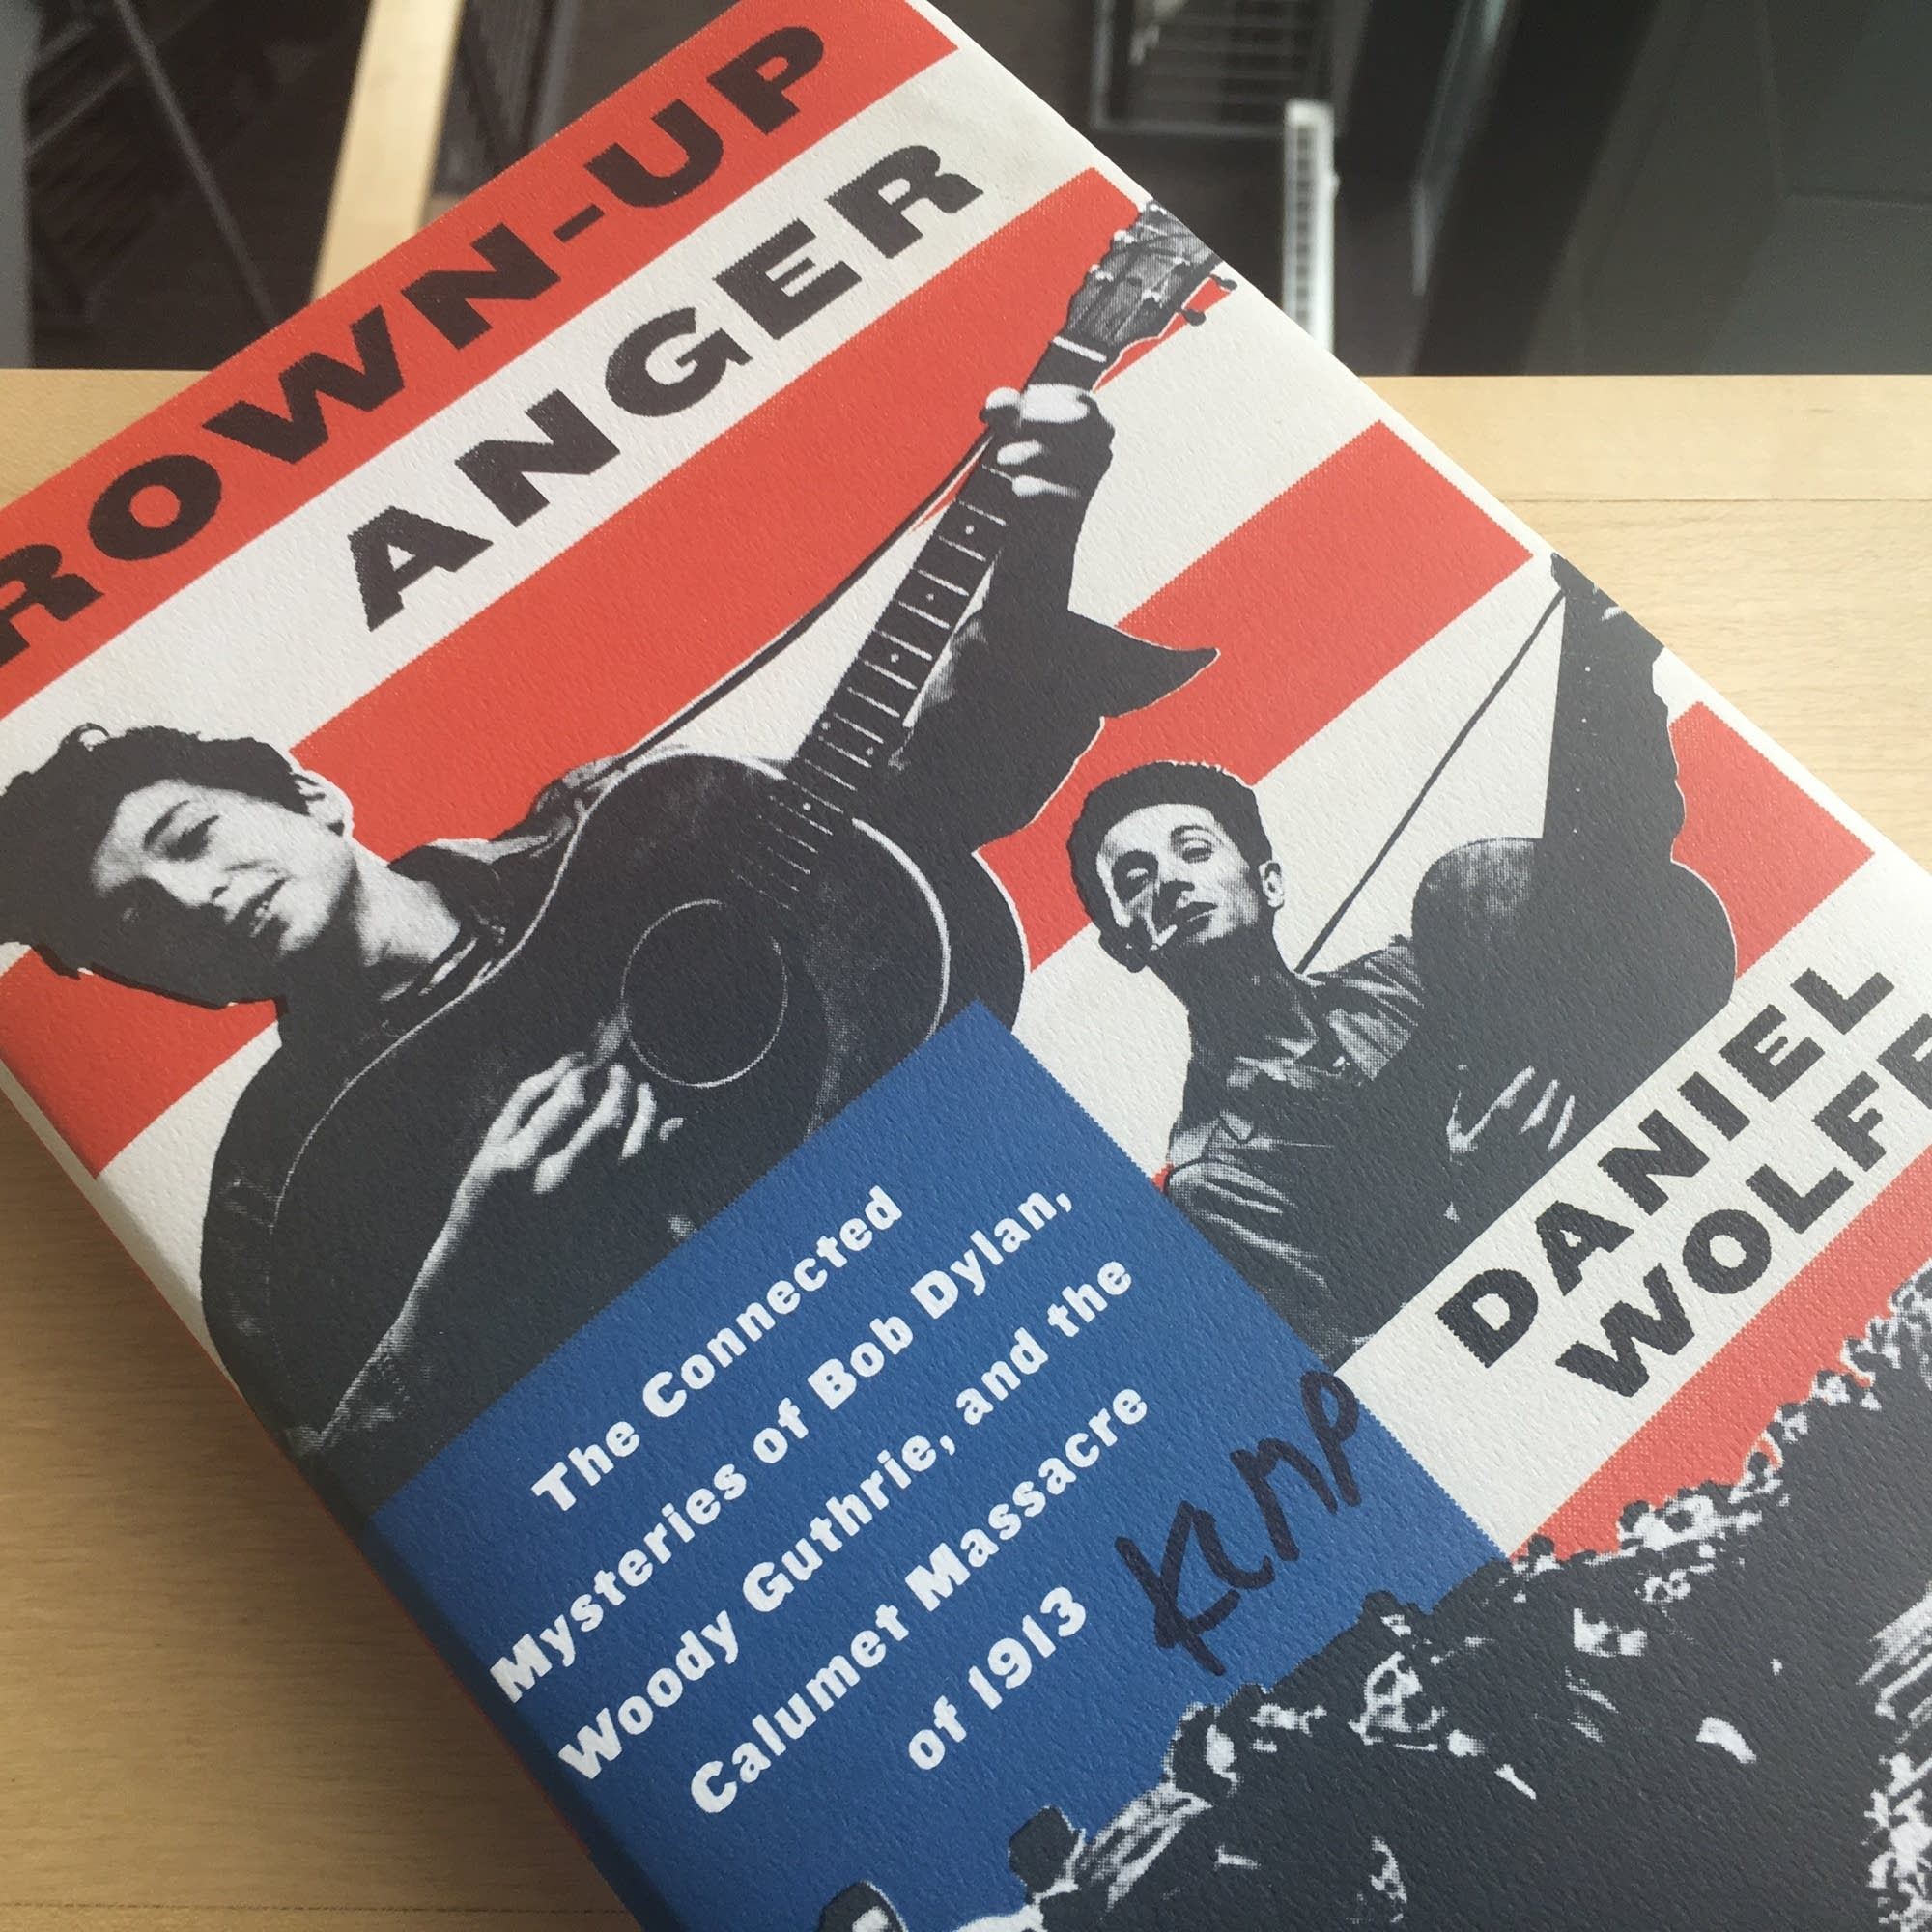 Daniel Wolff's 'Grown-Up Anger'